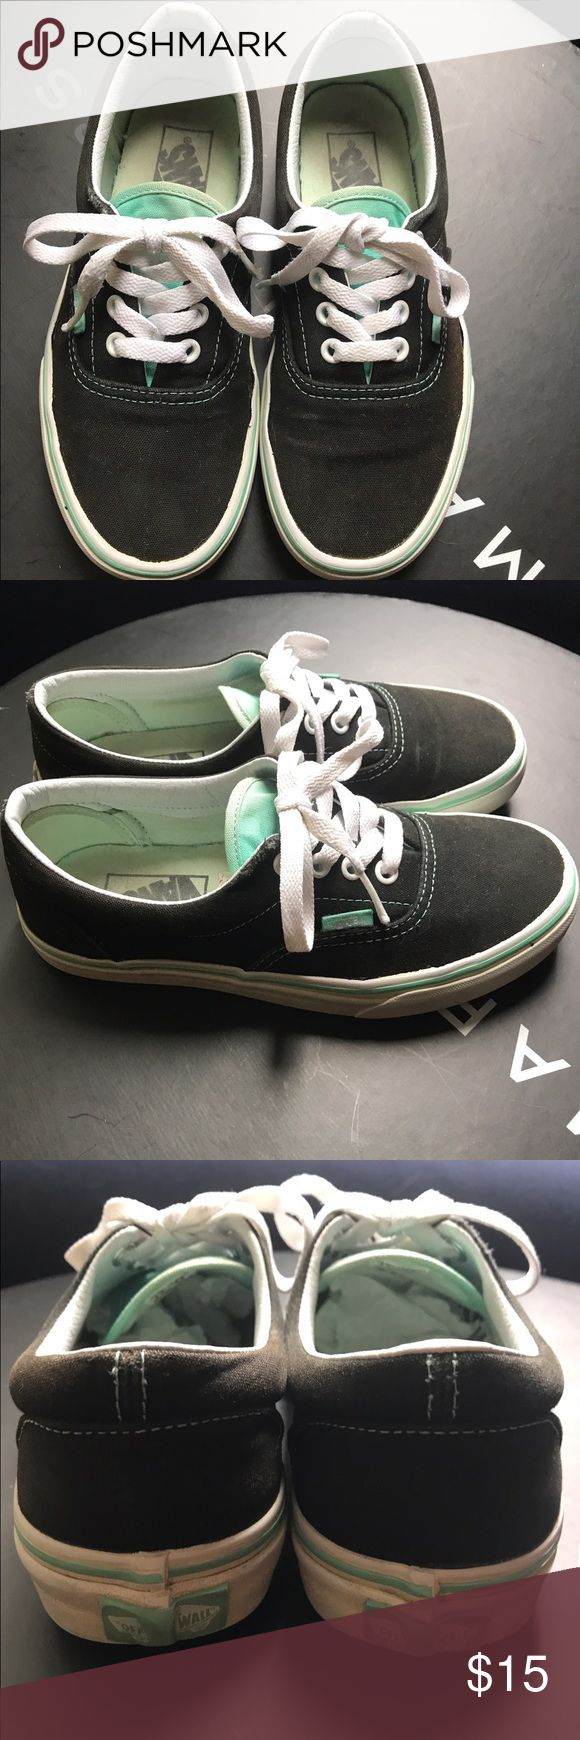 Black/ Mint Vans Lots of life left on the soles. Wear on tongues and some fading, but freshly cleaned and still in good condition. Vans Shoes Sneakers